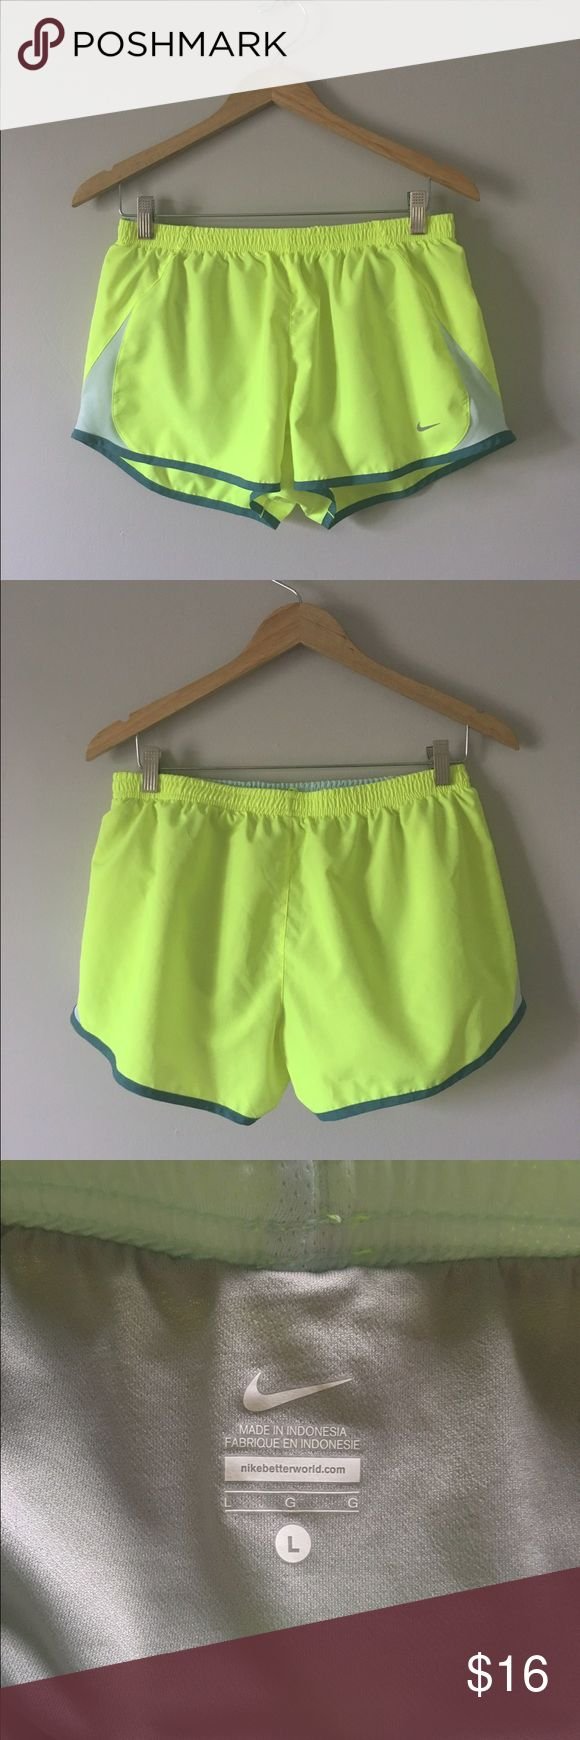 Women's Nike Running Shorts Size L For sale is one pair of Large Women's Nike Running Shorts. Barely used and in great condition. They have sewn in panties. These shorts are neon yellow with a silver stripe down the sides and dark teal piping. Make me an offer or bundle and save! Nike Shorts